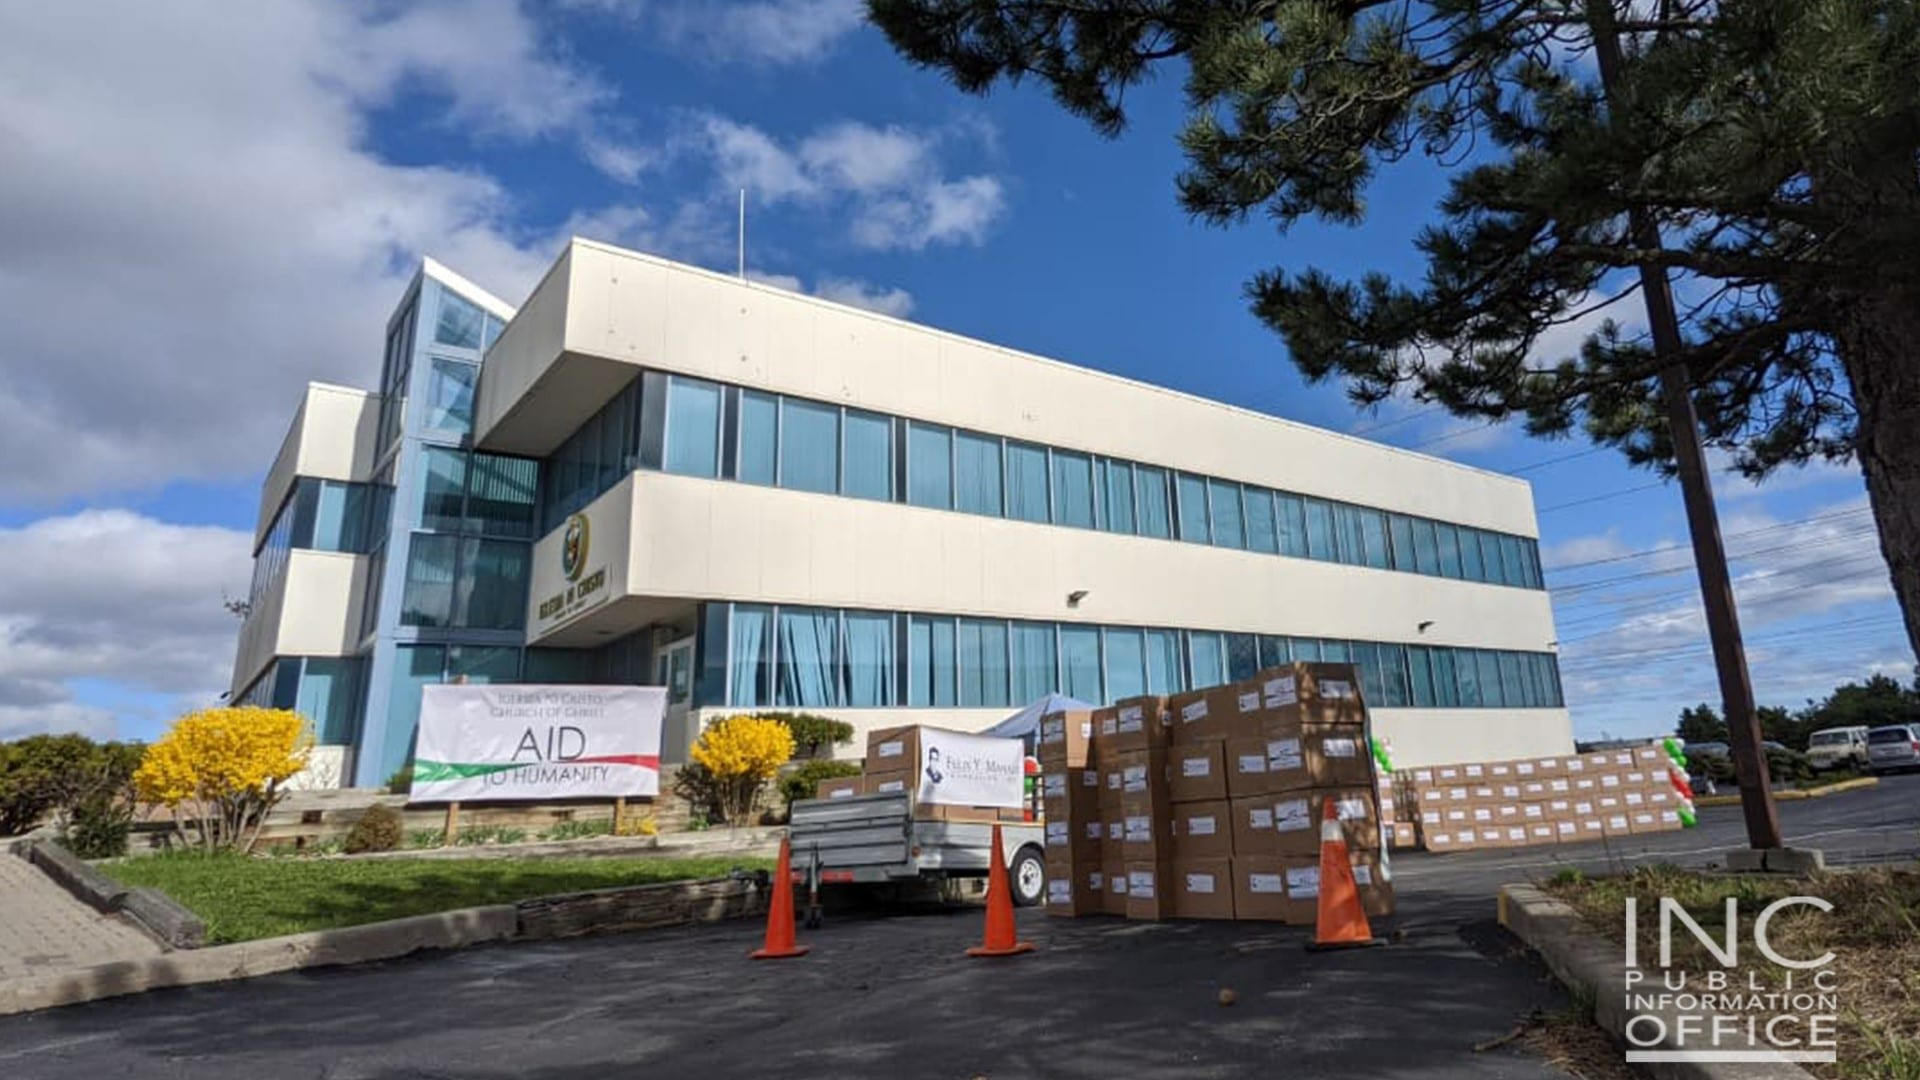 312 boxes of food donations for 5n2 Kitchens are arranged by Iglesia Ni Cristo (INC) or Church Of Christ Volunteers outside the INC's Greater Toronto District Office at an Aid To Humanity Event